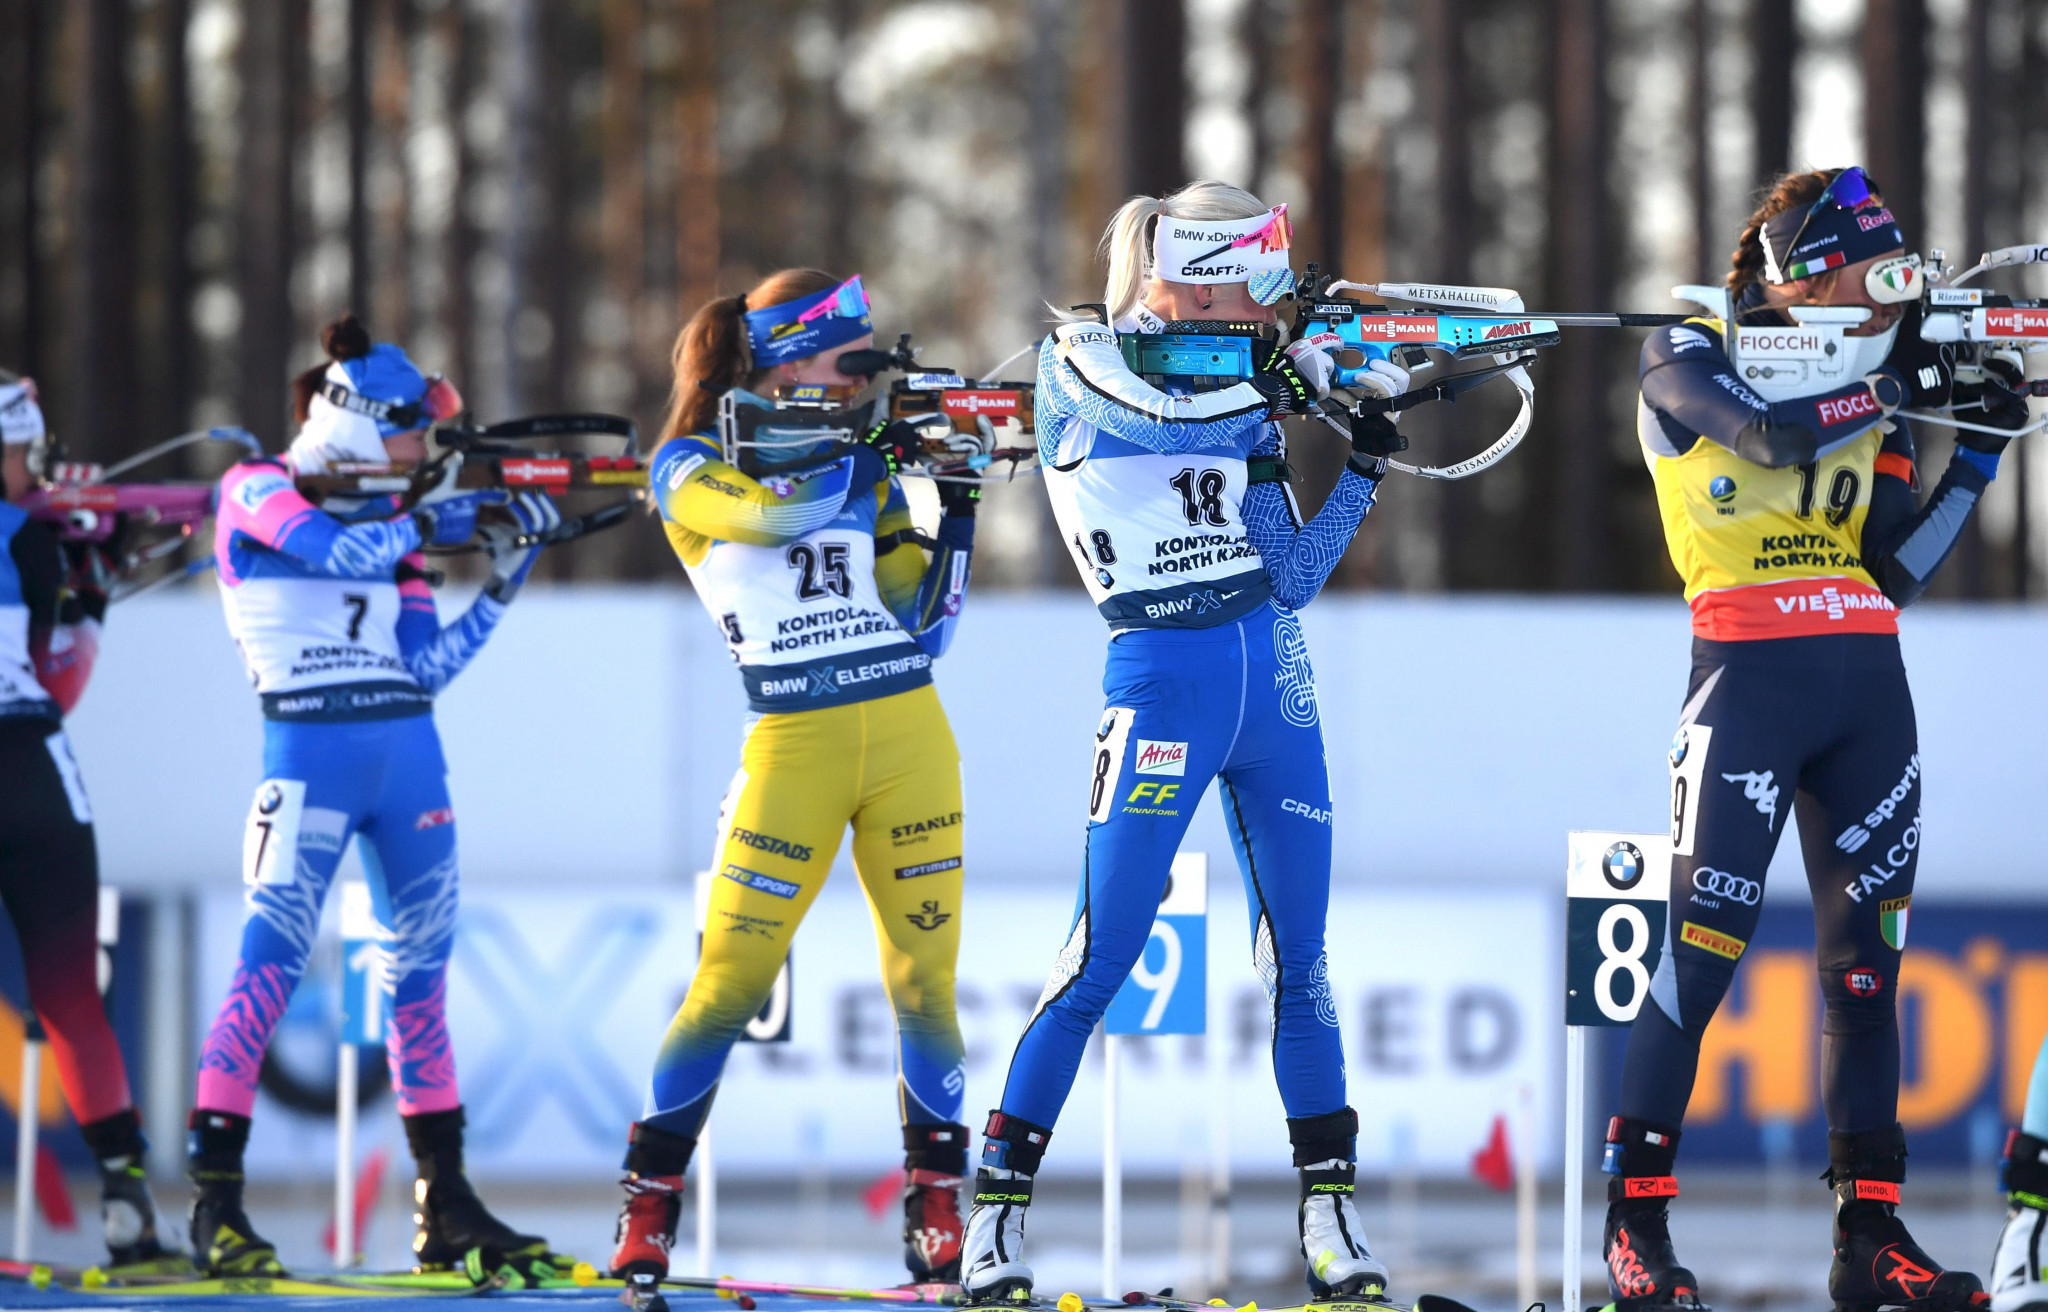 Thousands respond to International Biathlon Union fan survey